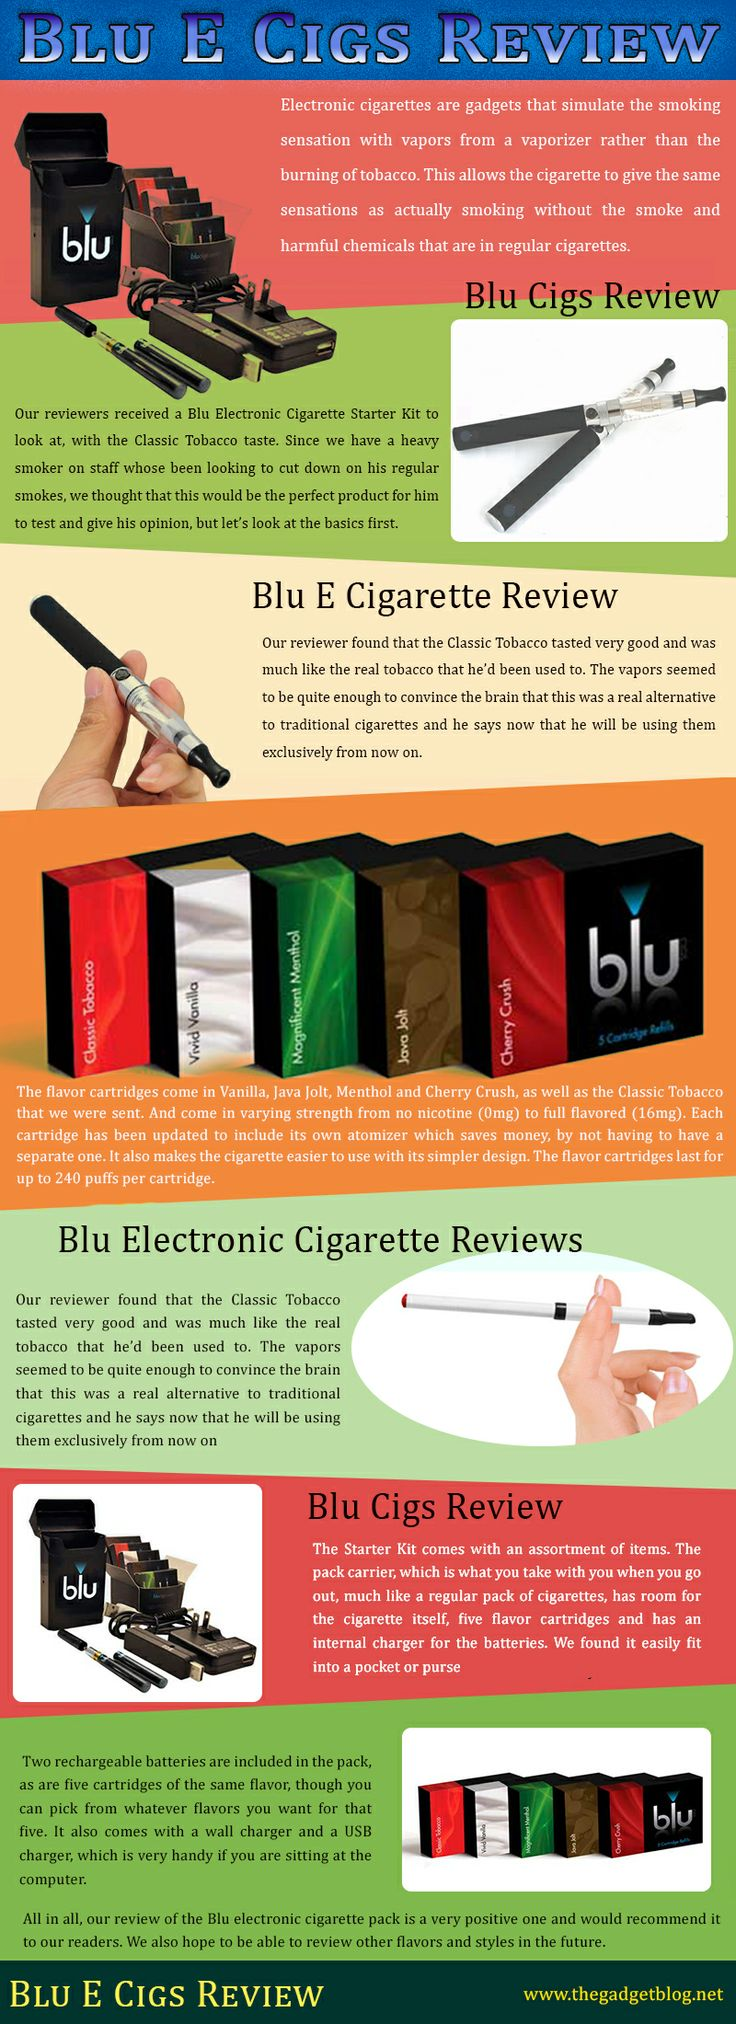 Visit our site http://www.thegadgetblog.net/ for more information on Blu E Cigs Review.Our reviewers received a Blu Electronic Cigarette Starter Kit to look at, with the Classic Tobacco taste. Since we have a heavy smoker on staff whose been looking to cut down on his regular smokes, we thought that this would be the perfect product for him to test and give his opinion, but let's look at the basics first.